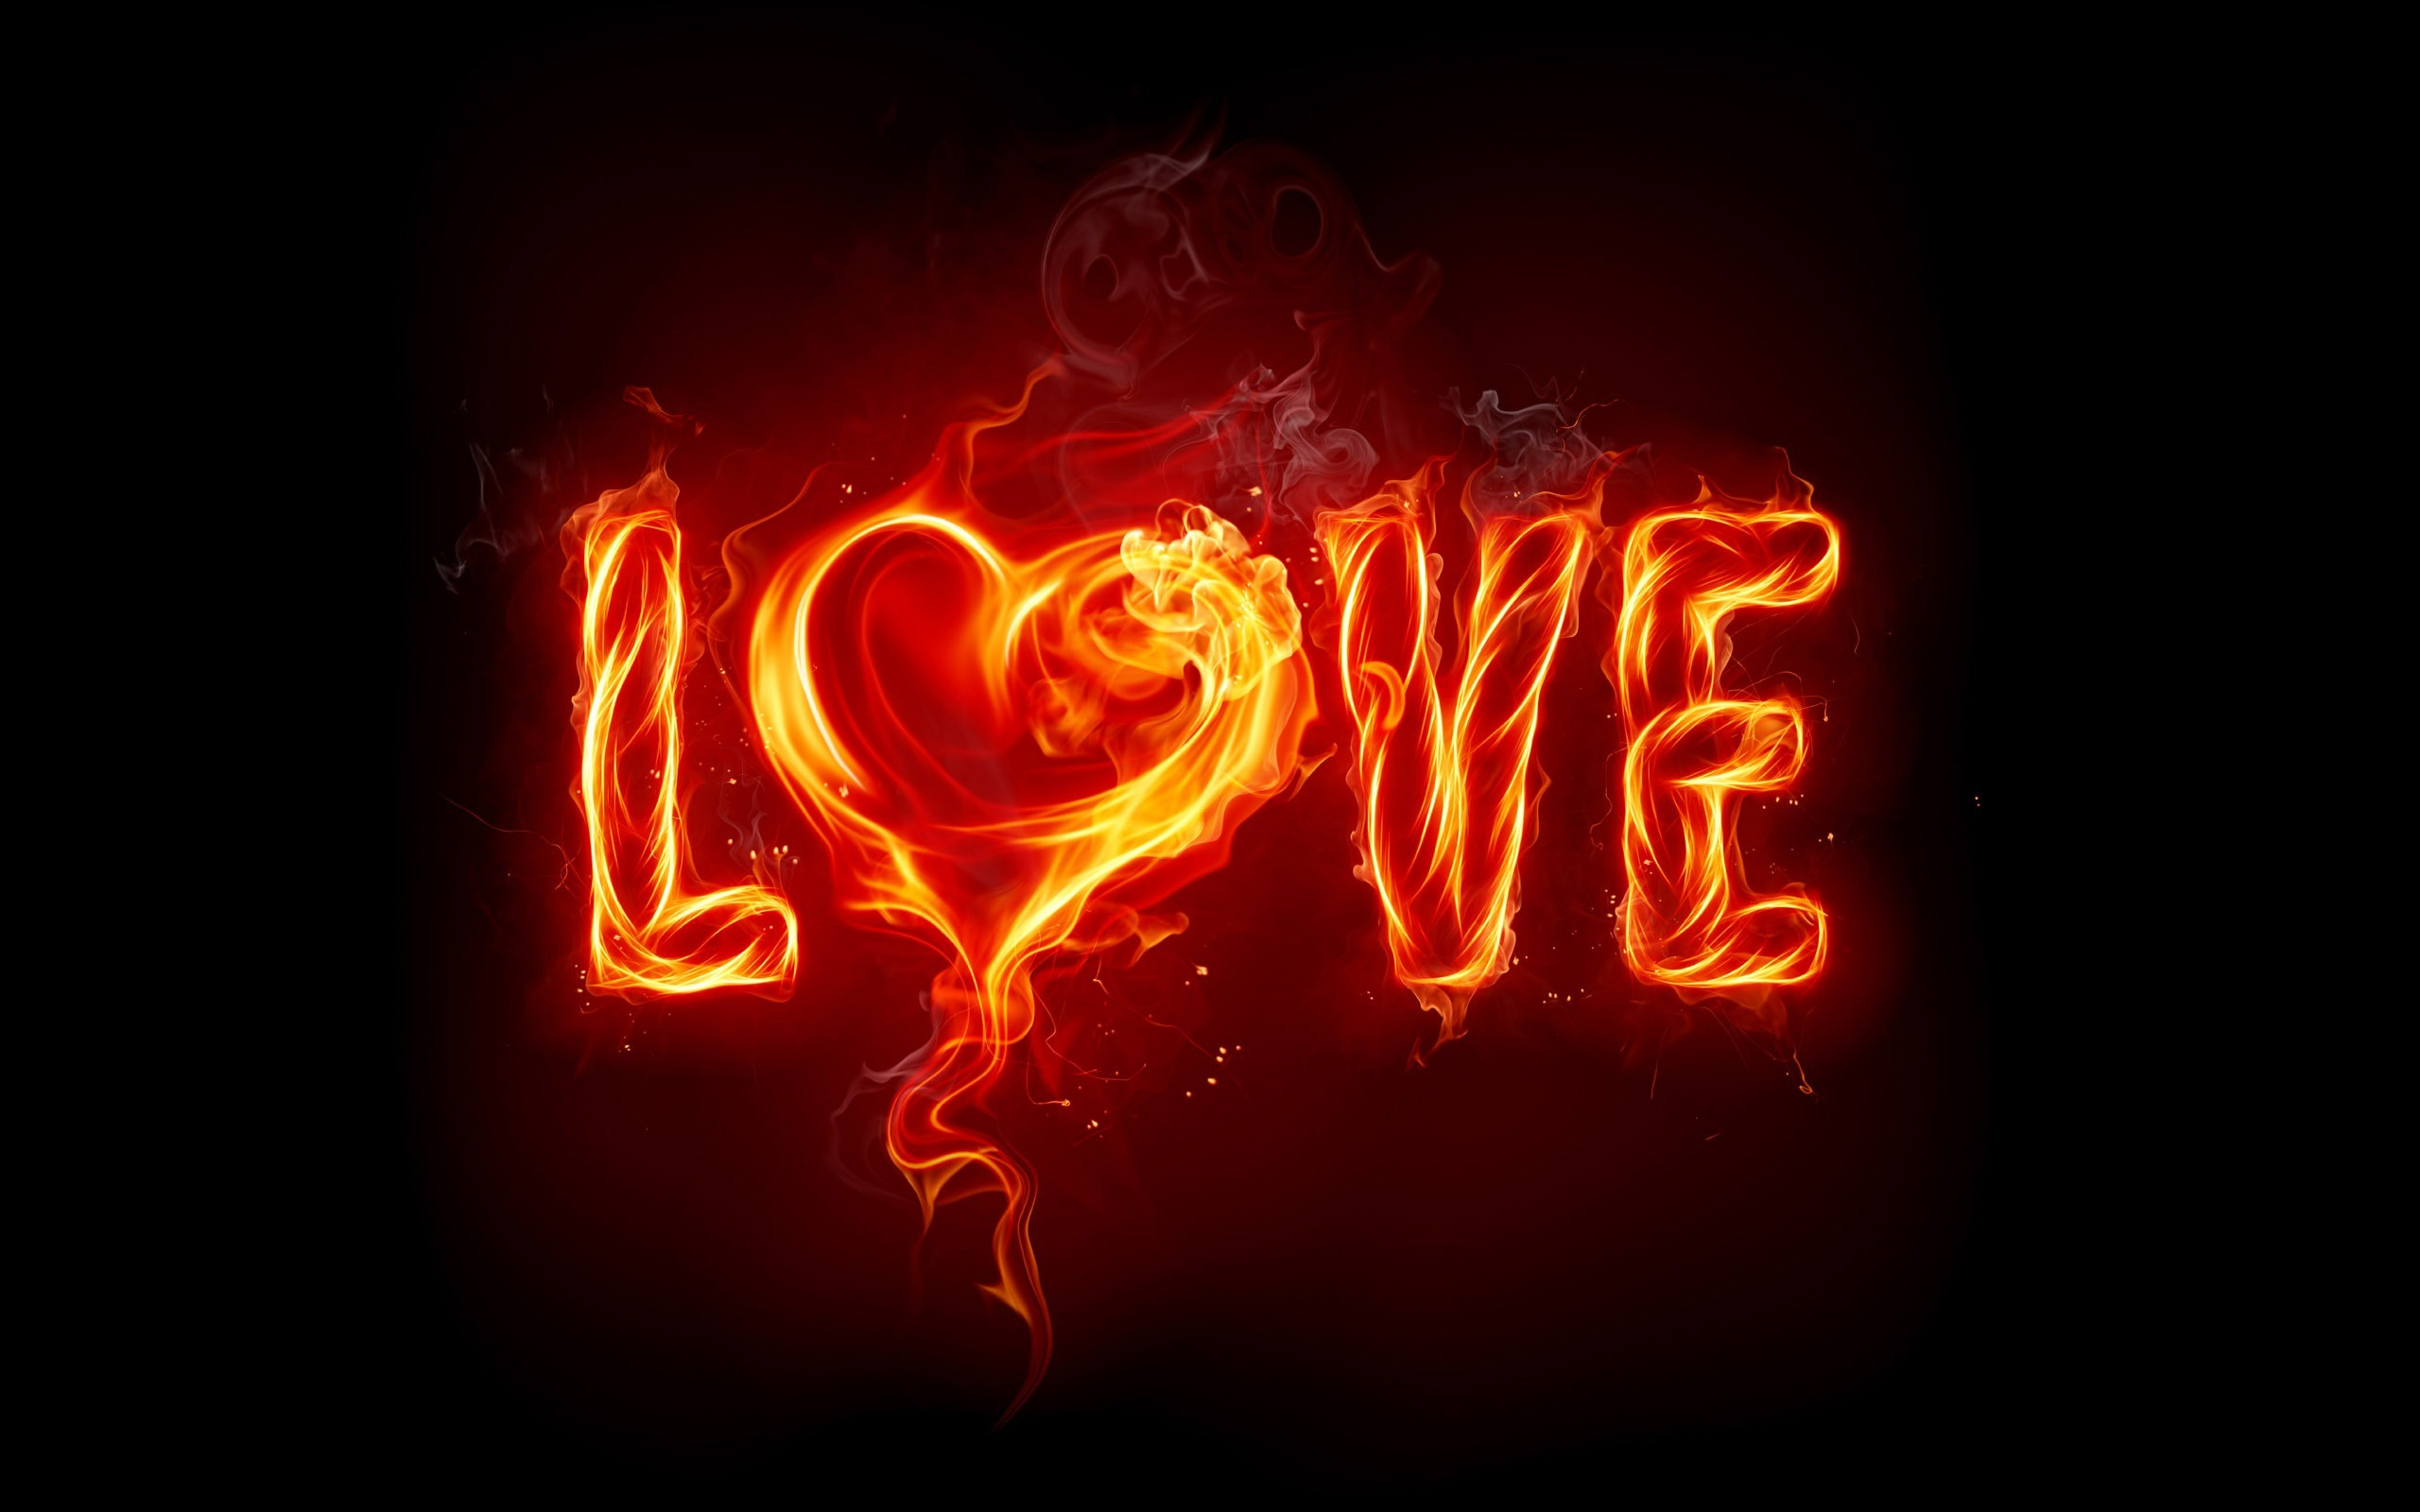 Love Fire Wallpaper Valentines Day Holidays